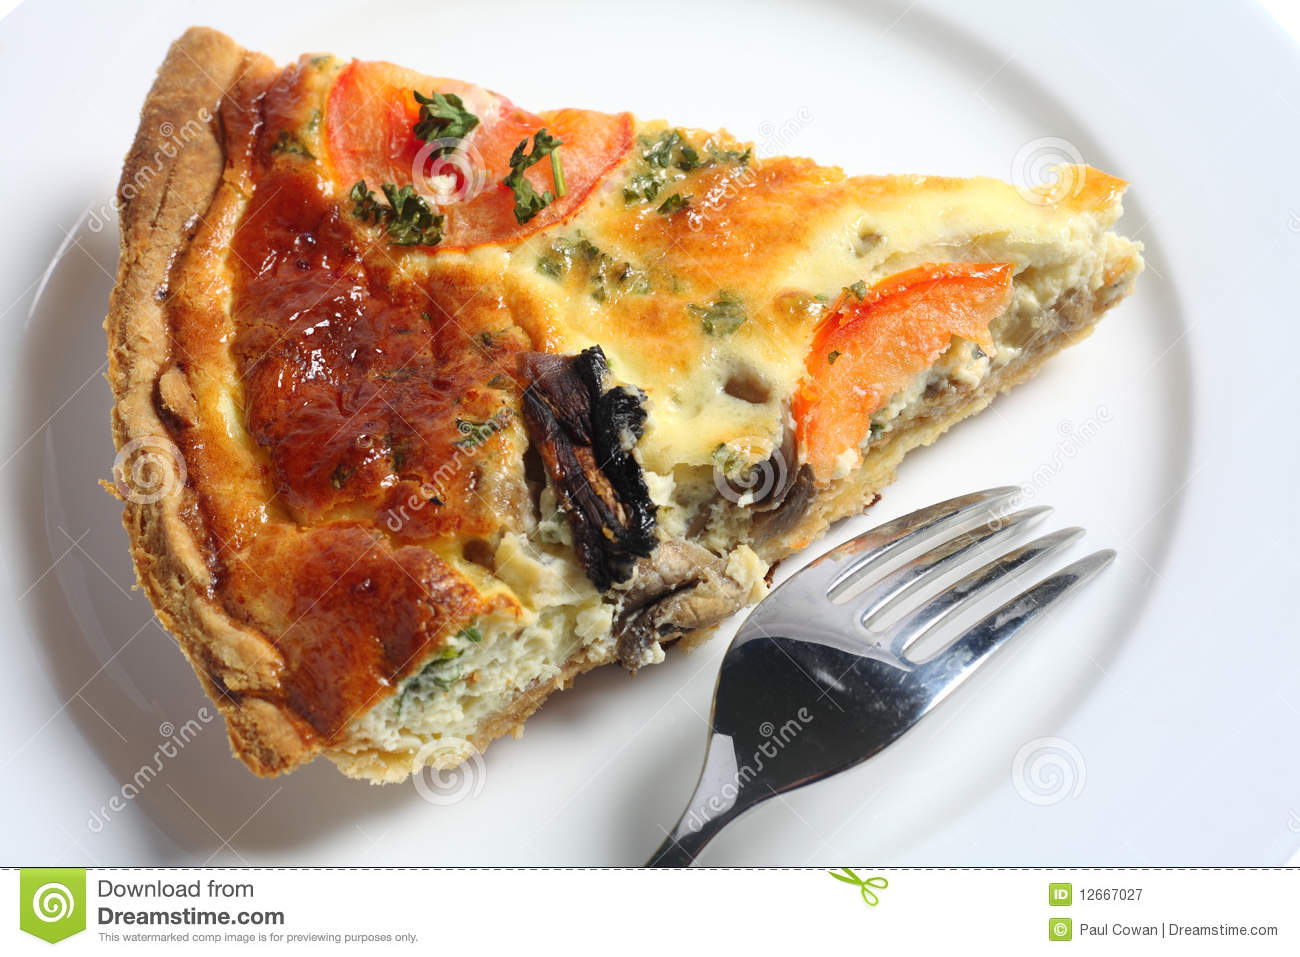 http://thumbs.dreamstime.com/z/slice-quiche-above-12667027.jpg